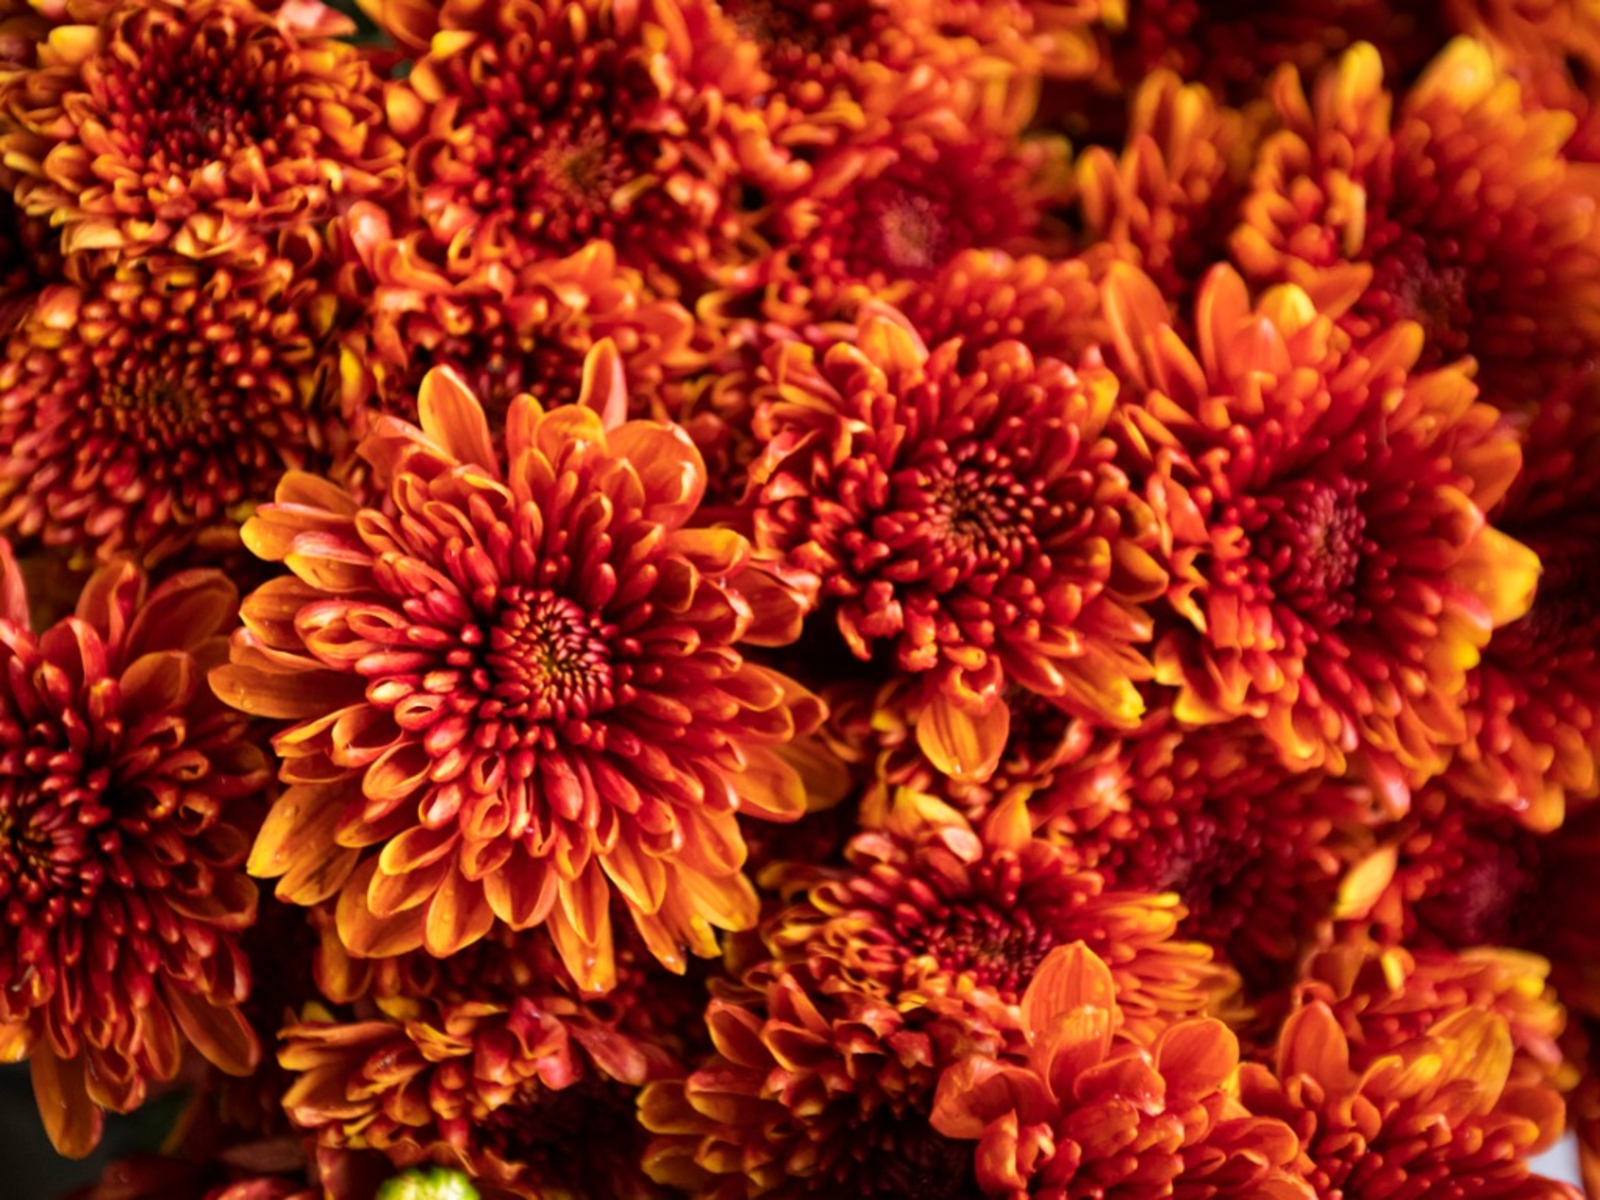 Chrysanthemum Care Tips For Growing Mums In The Garden